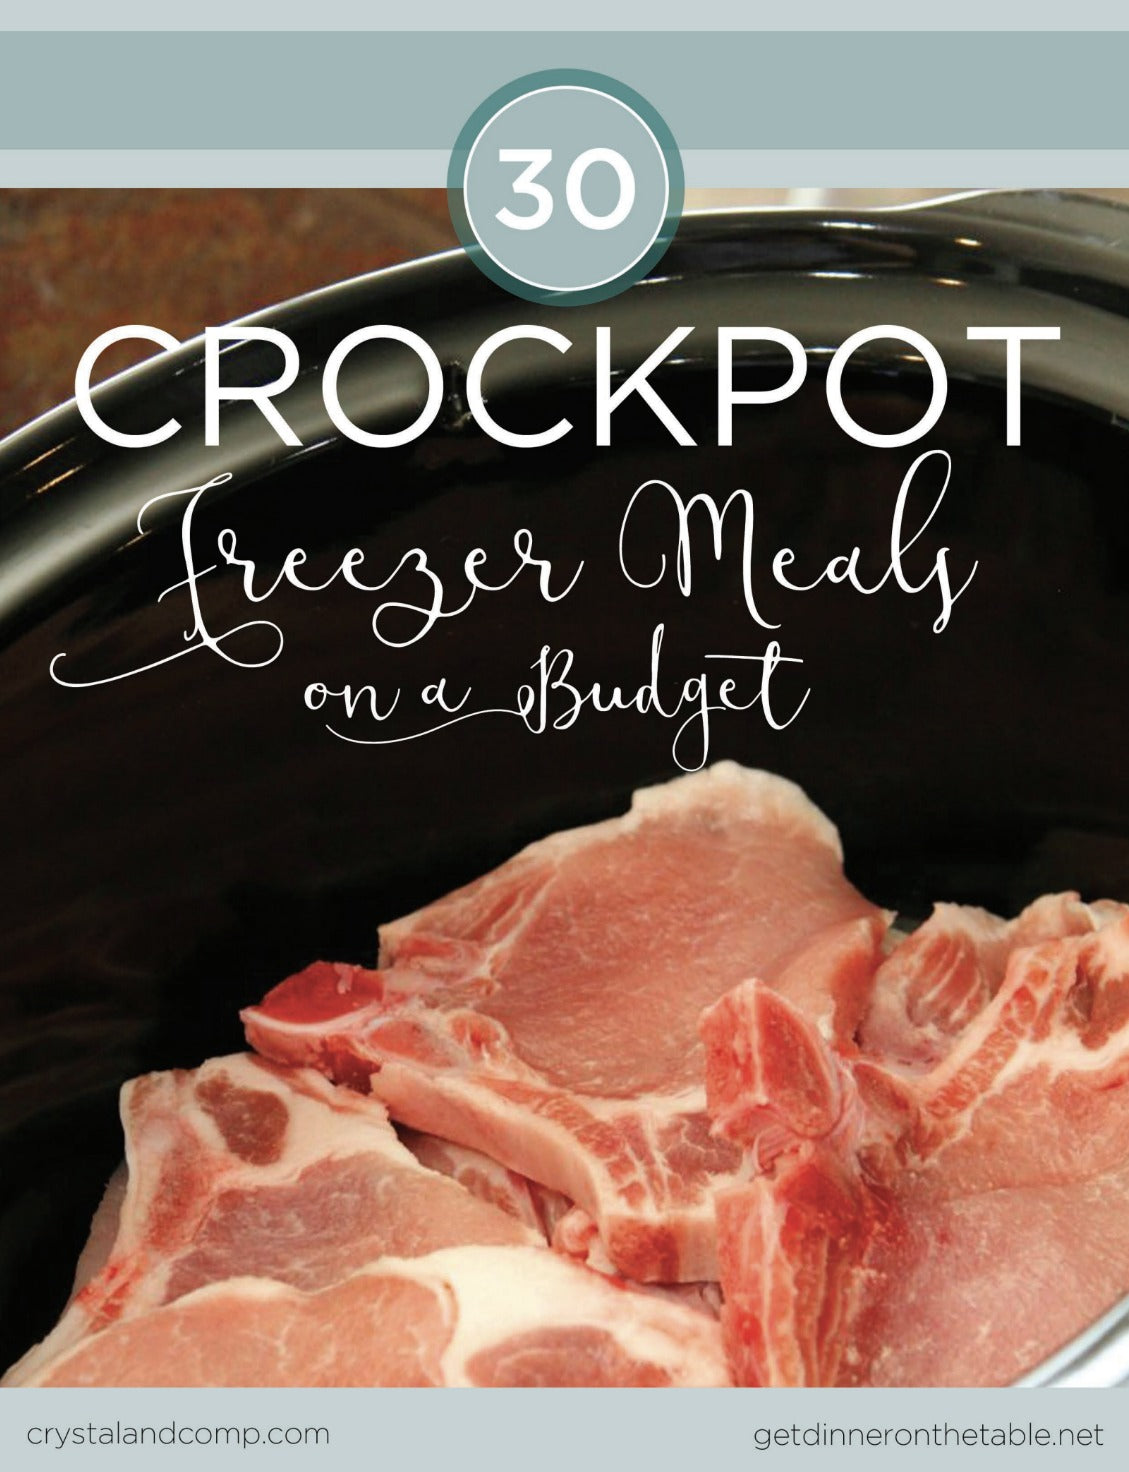 30 Crockpot Freezer Meals on a Budget